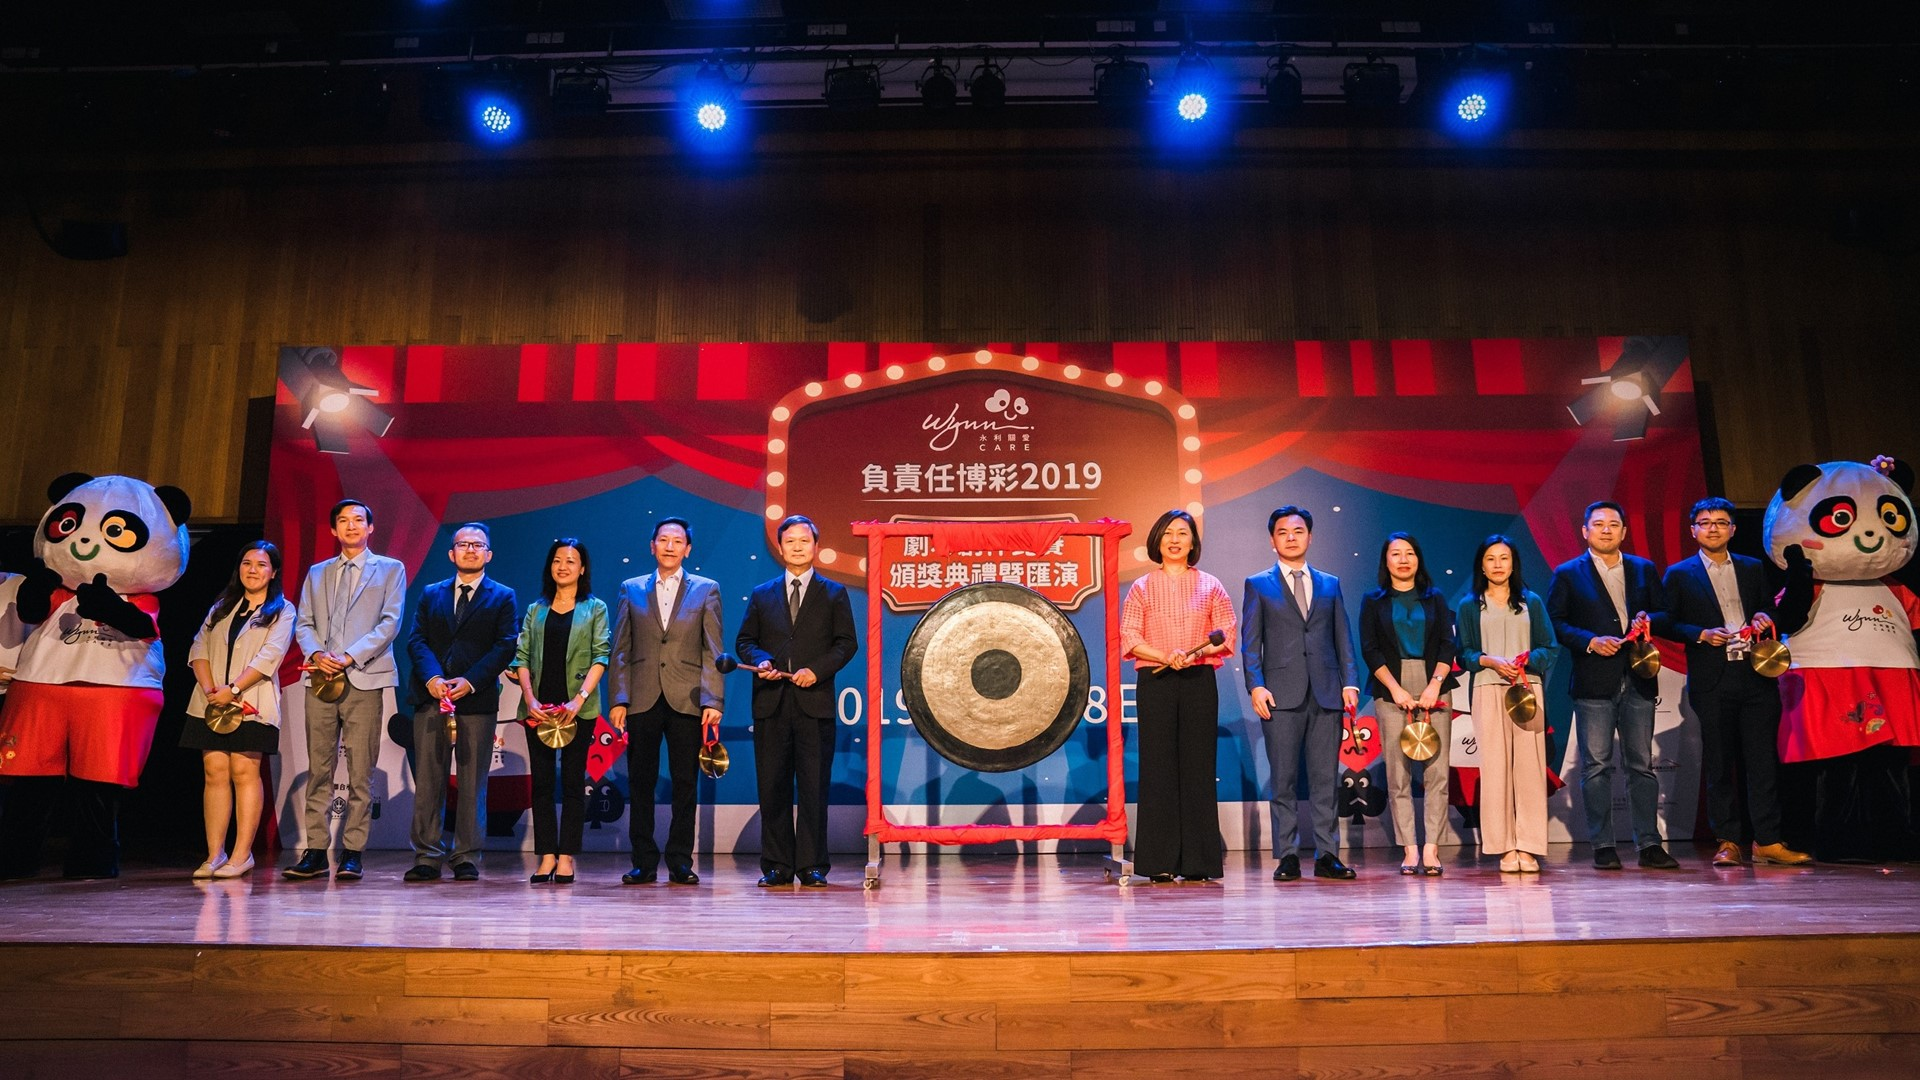 Wynn holds the Responsible Gaming Script Contest to encourage Macau students and citizens to actively participate in amp